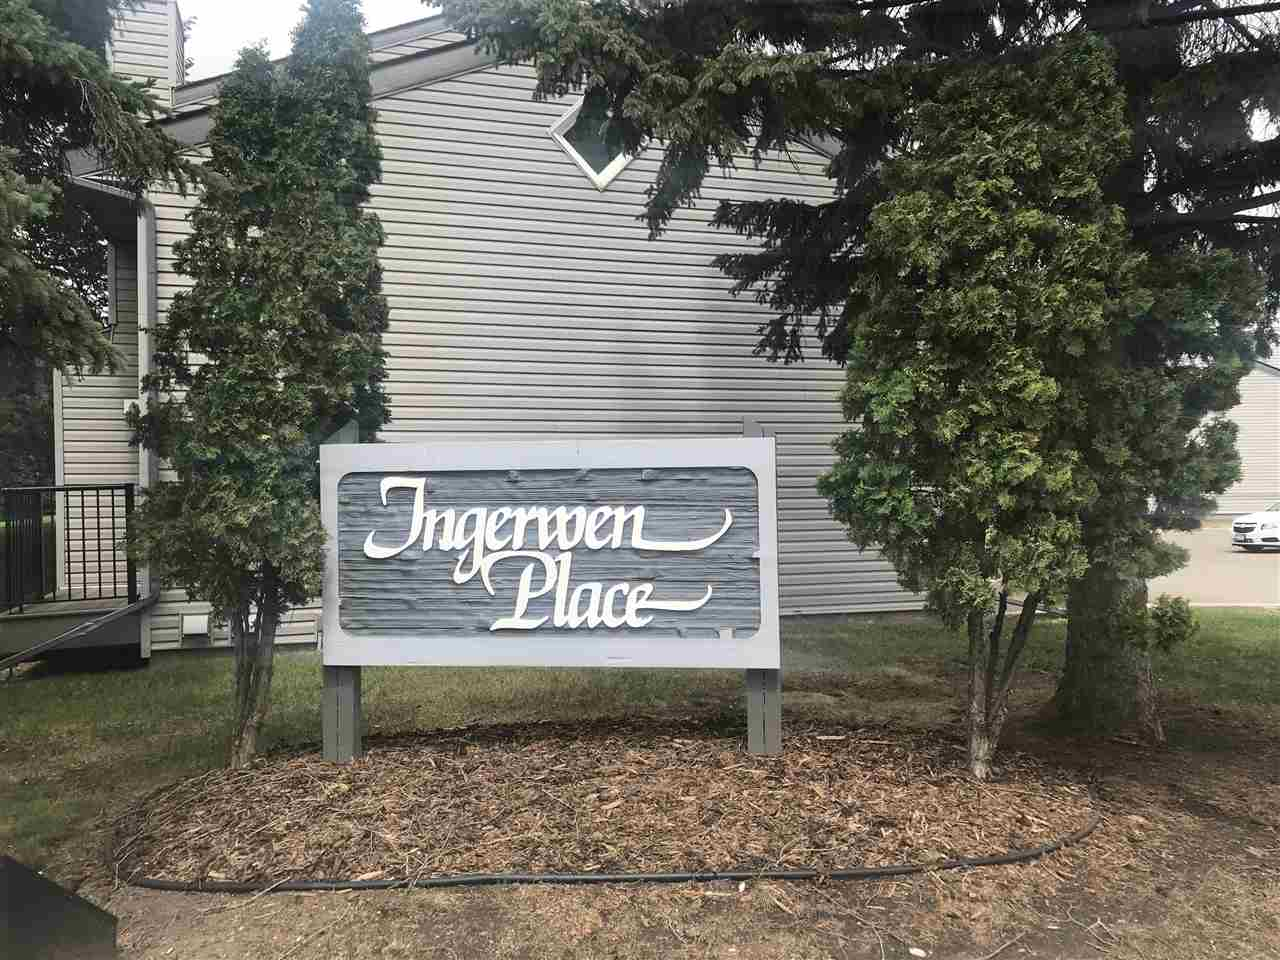 Ingerwen Place....LOCATION is outstanding in Greenview! And such a complex...siding, steps, windows ,shingles, soffits, fascia are a few of the recent upgrades. This end unit has parking right in front of the door and boasts some raspberry plants also. This unit is nice and clean, has 2 bedrooms with 2 full bathrooms and a powder room on the main floor. There is a fully finished basement with a large family room, one of the full bathrooms and a separate laundry area. This well kept complex is close to everything... recreation places, swimming pool, shopping, public transportation, dog park, and schools for every age.